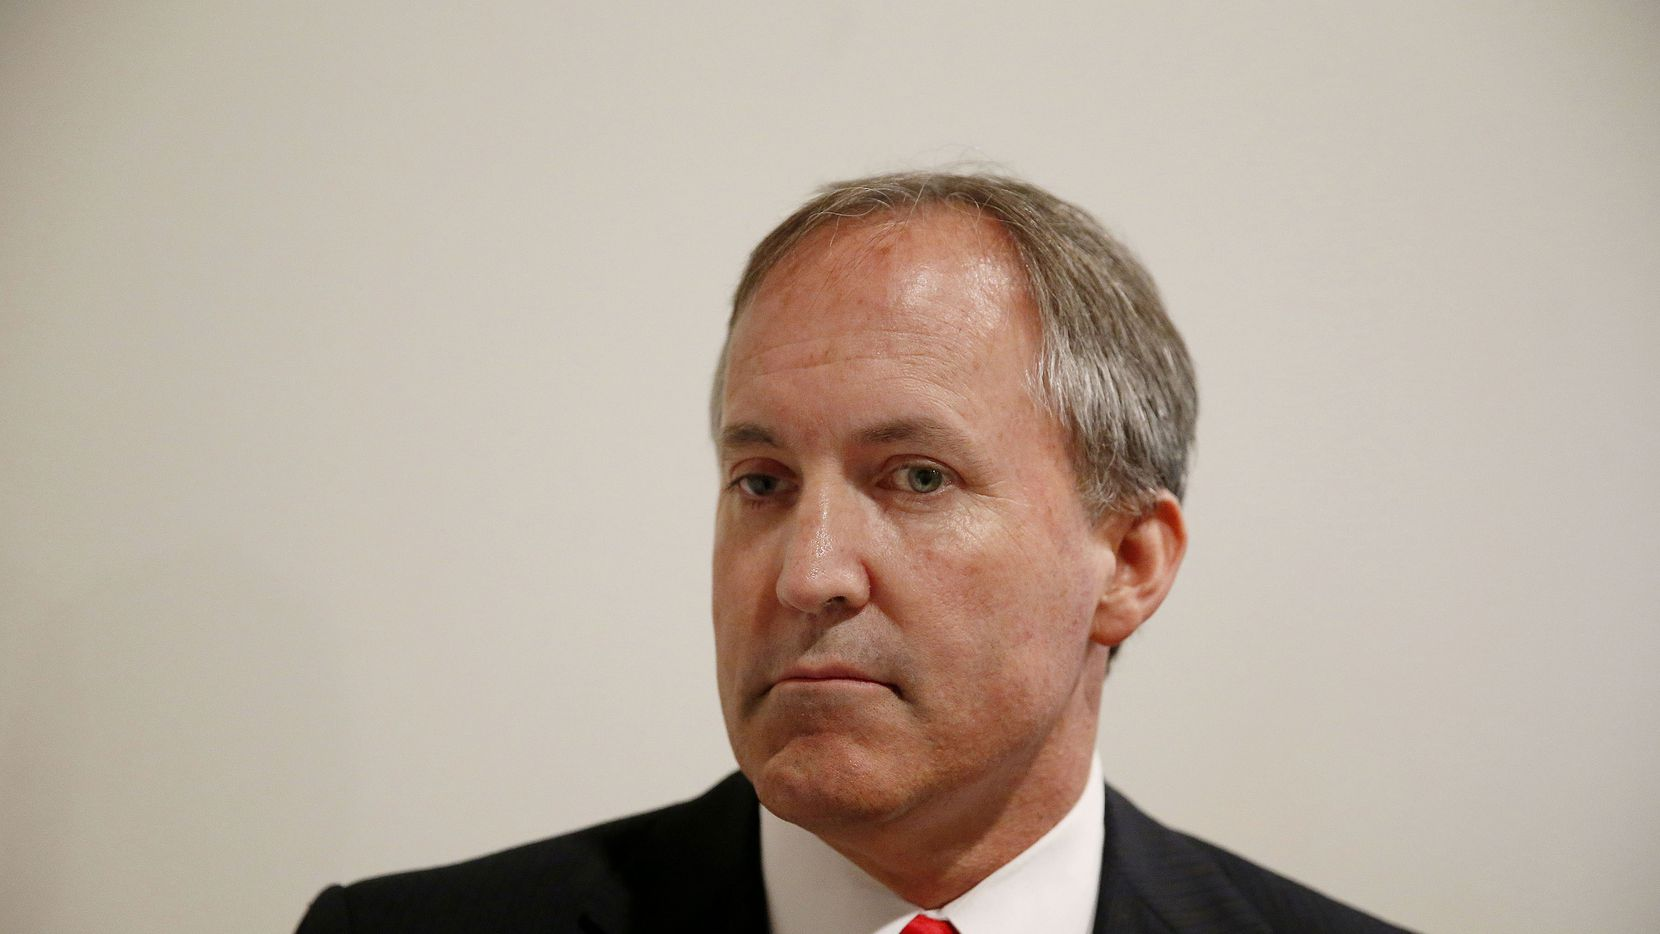 Texas Attorney General Ken Paxton speaks to the media after The Online Safety Roadshow at Leadership Prep School in Frisco, Texas Wednesday May 6, 2015. (Andy Jacobsohn/The Dallas Morning News)